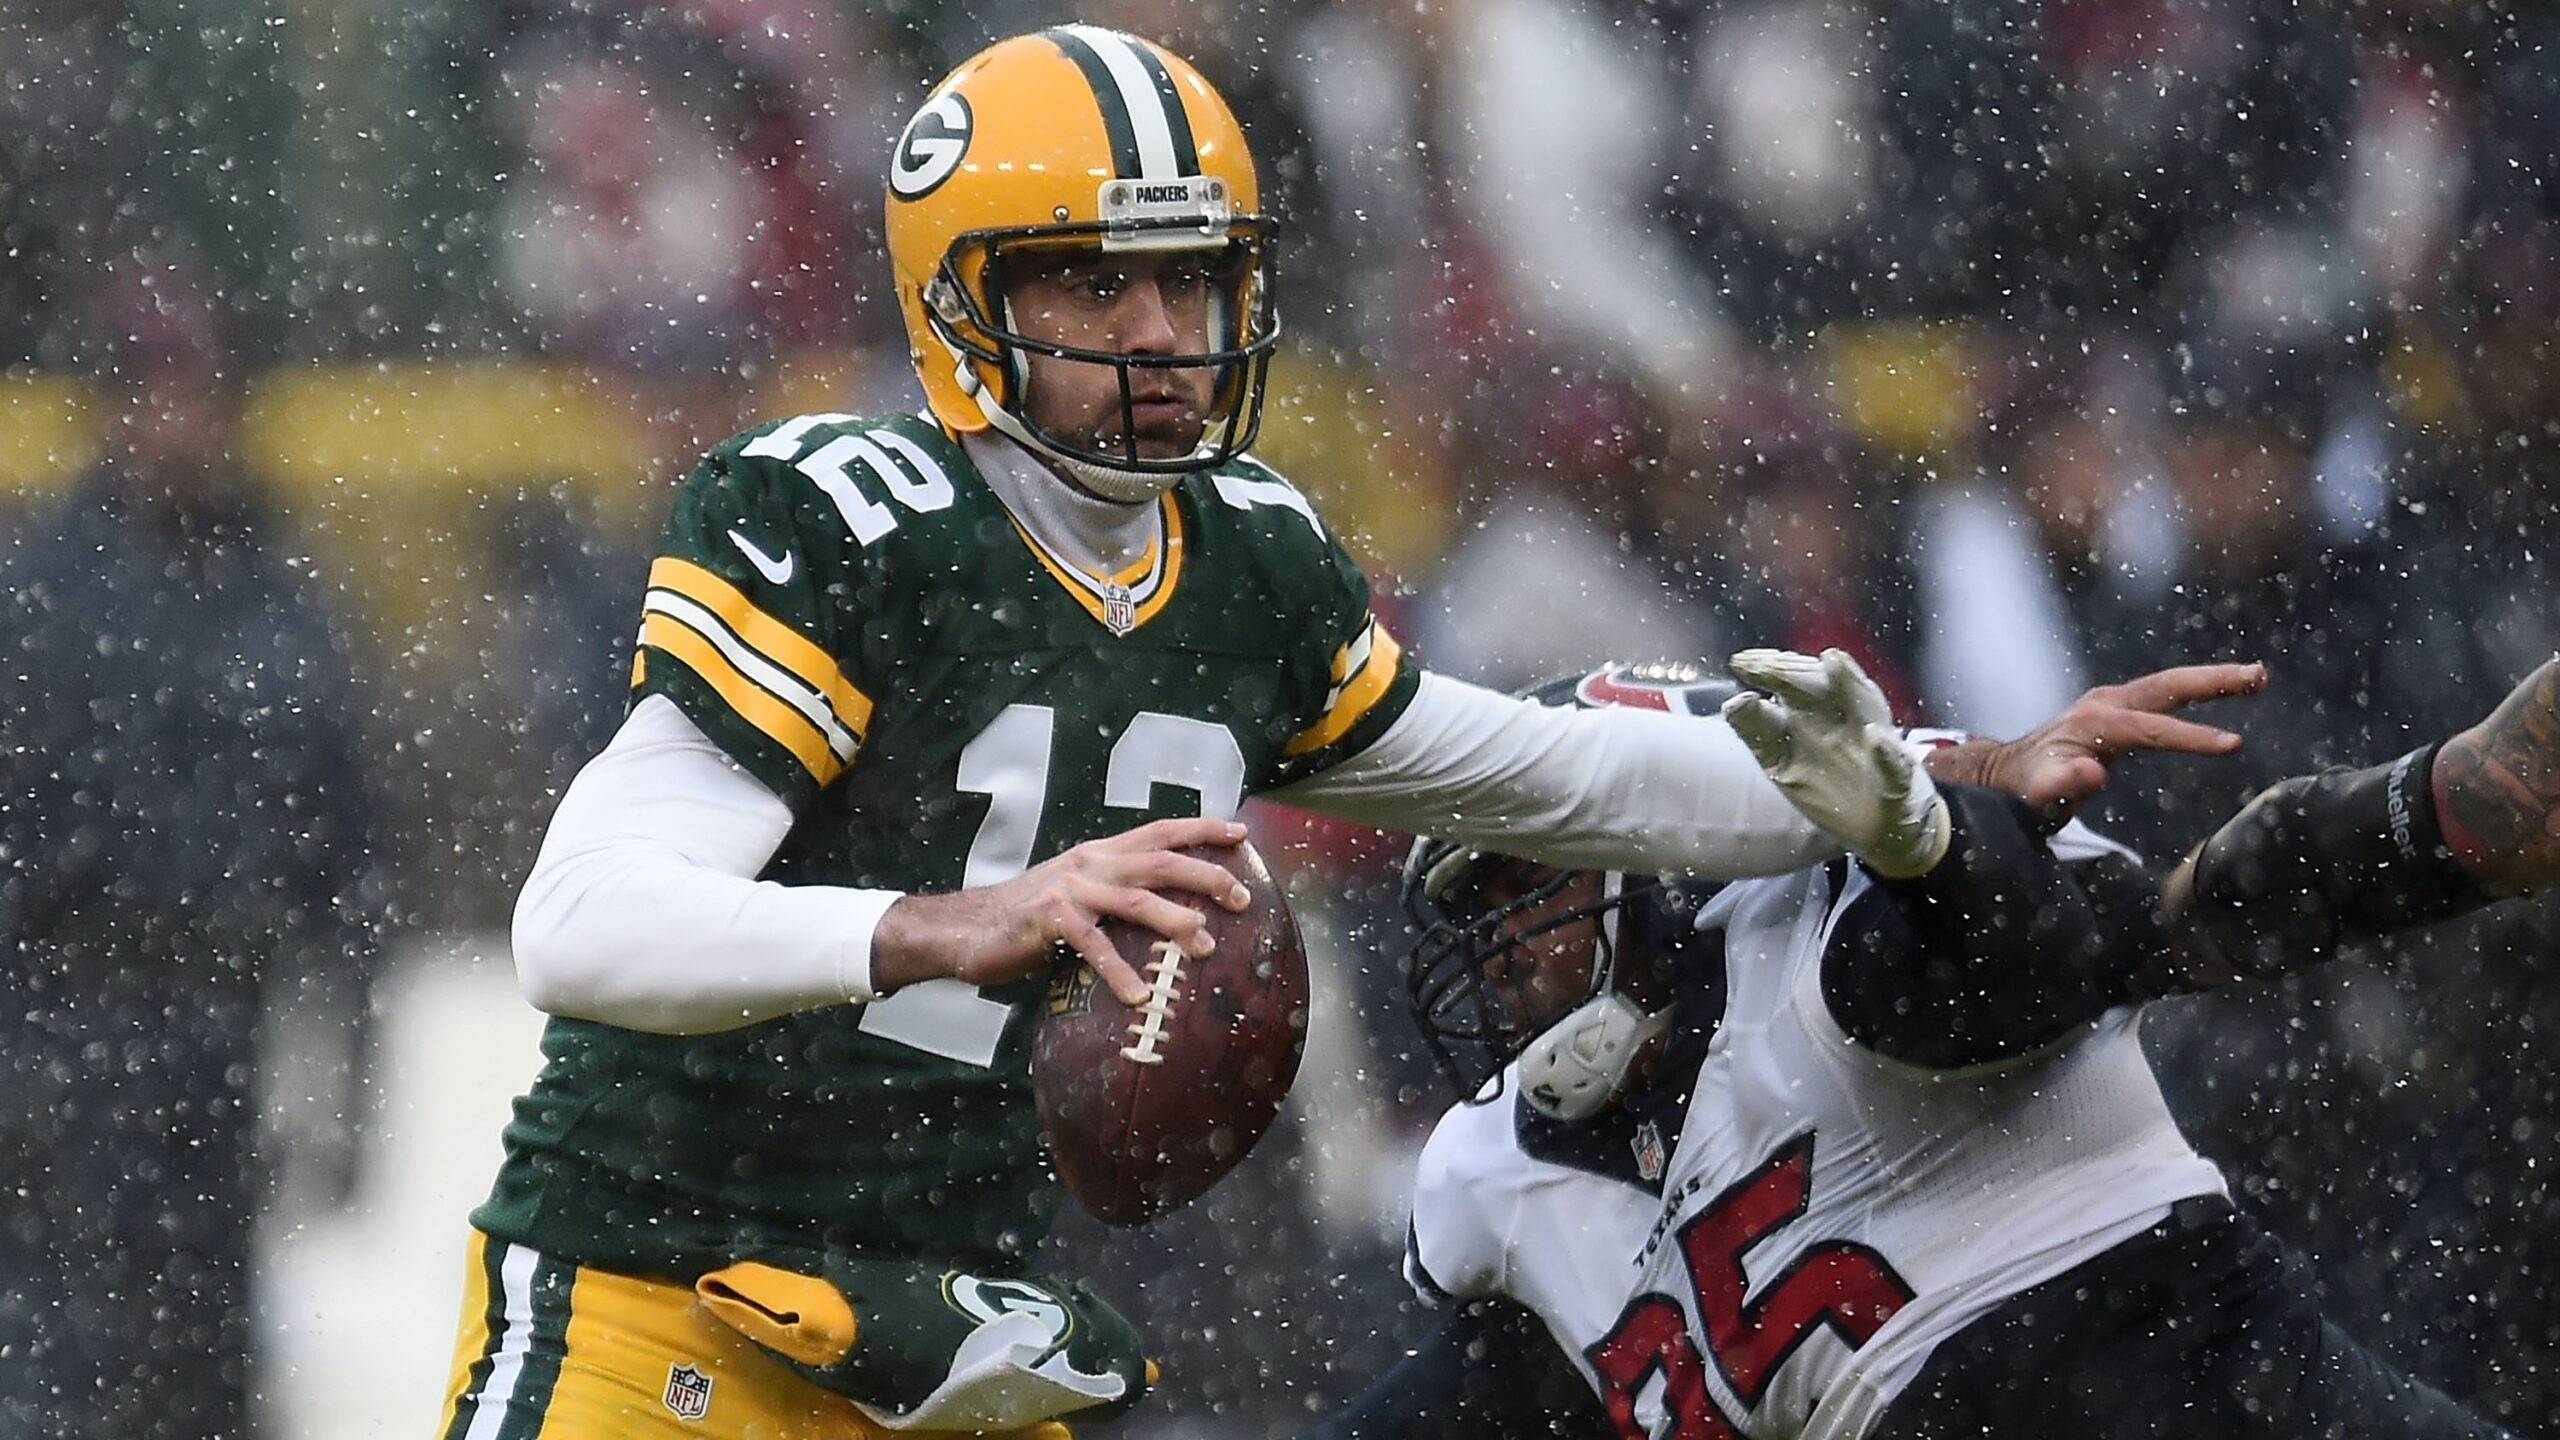 Packers vs Texans live stream: how to watch NFL week 7 online from anywhere